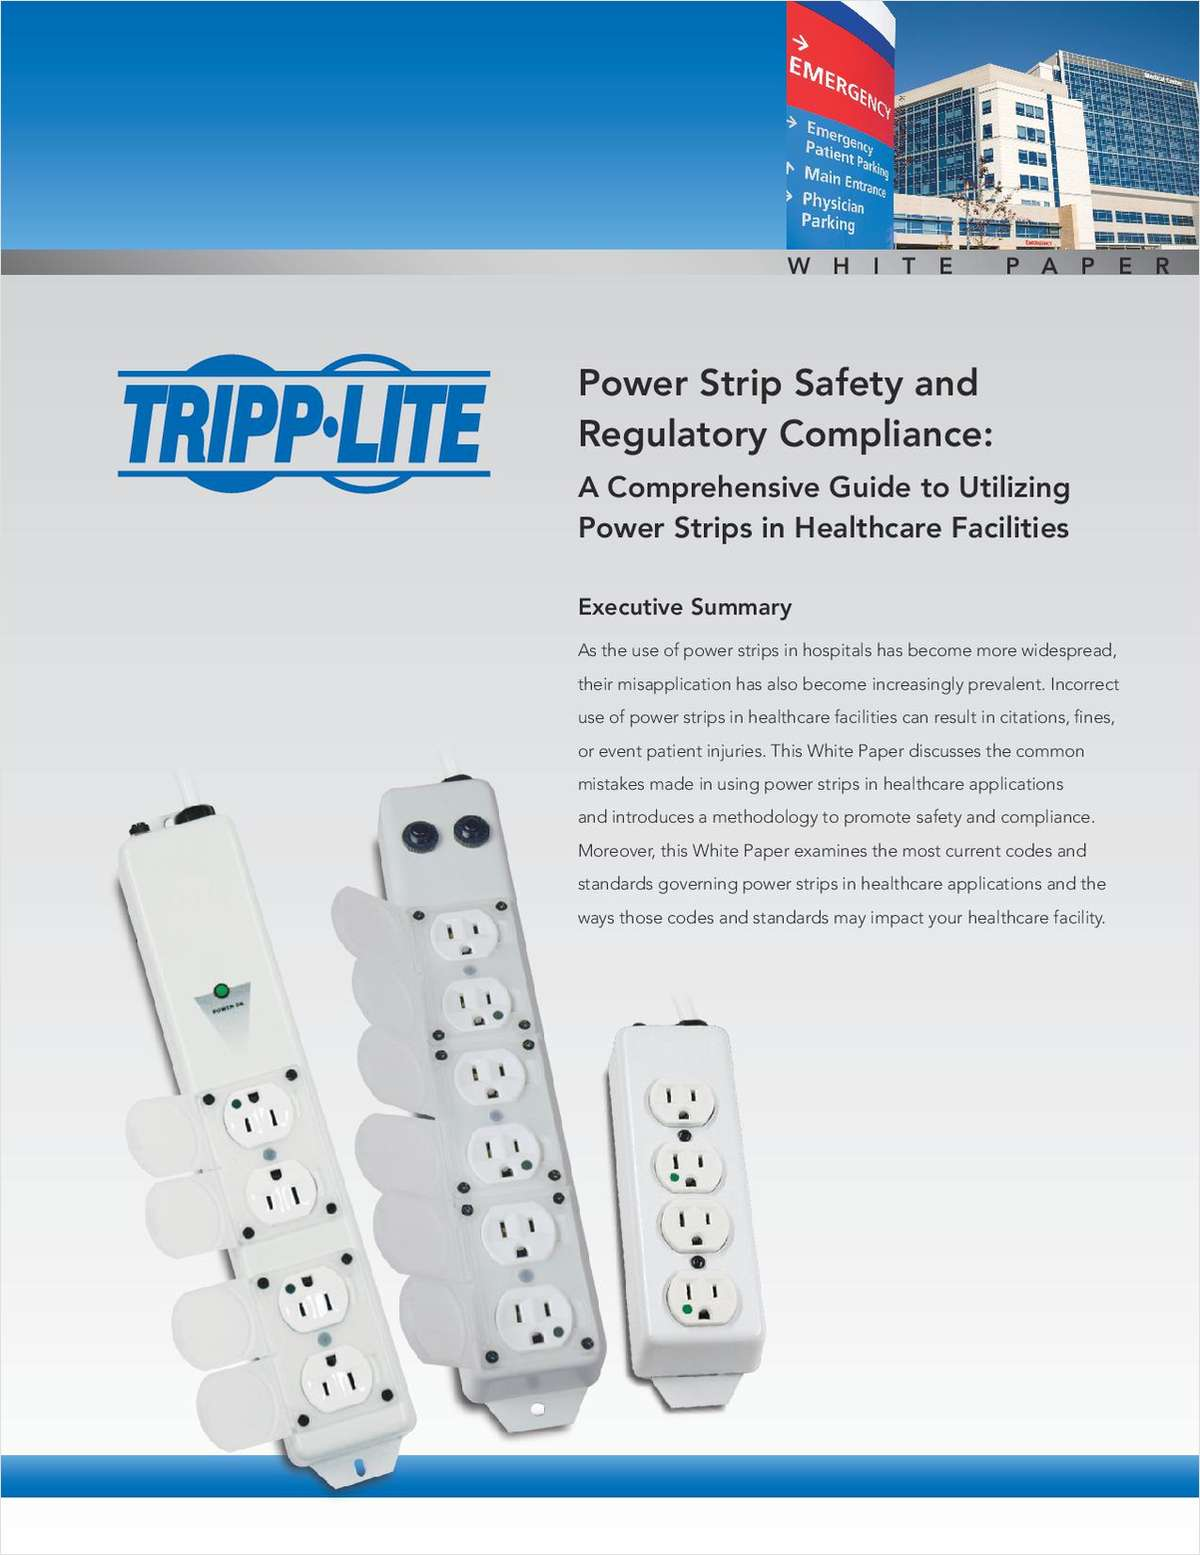 Power Strip Safety and Regulatory Compliance